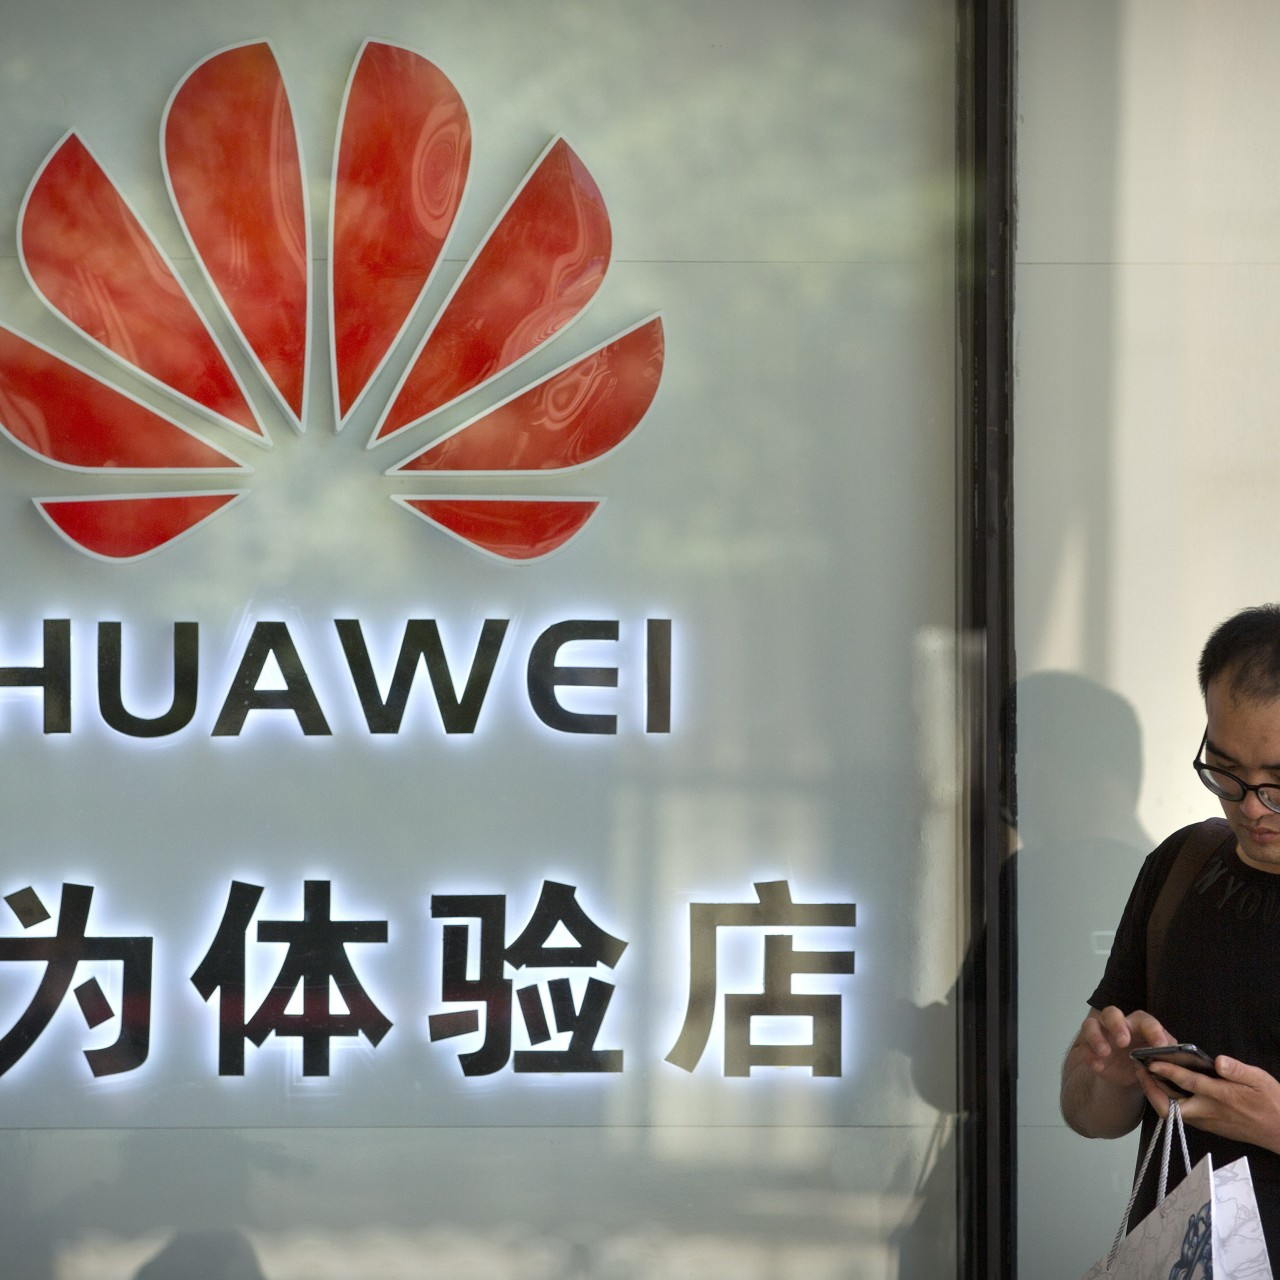 By blacklisting Huawei, the US may have triggered a new era